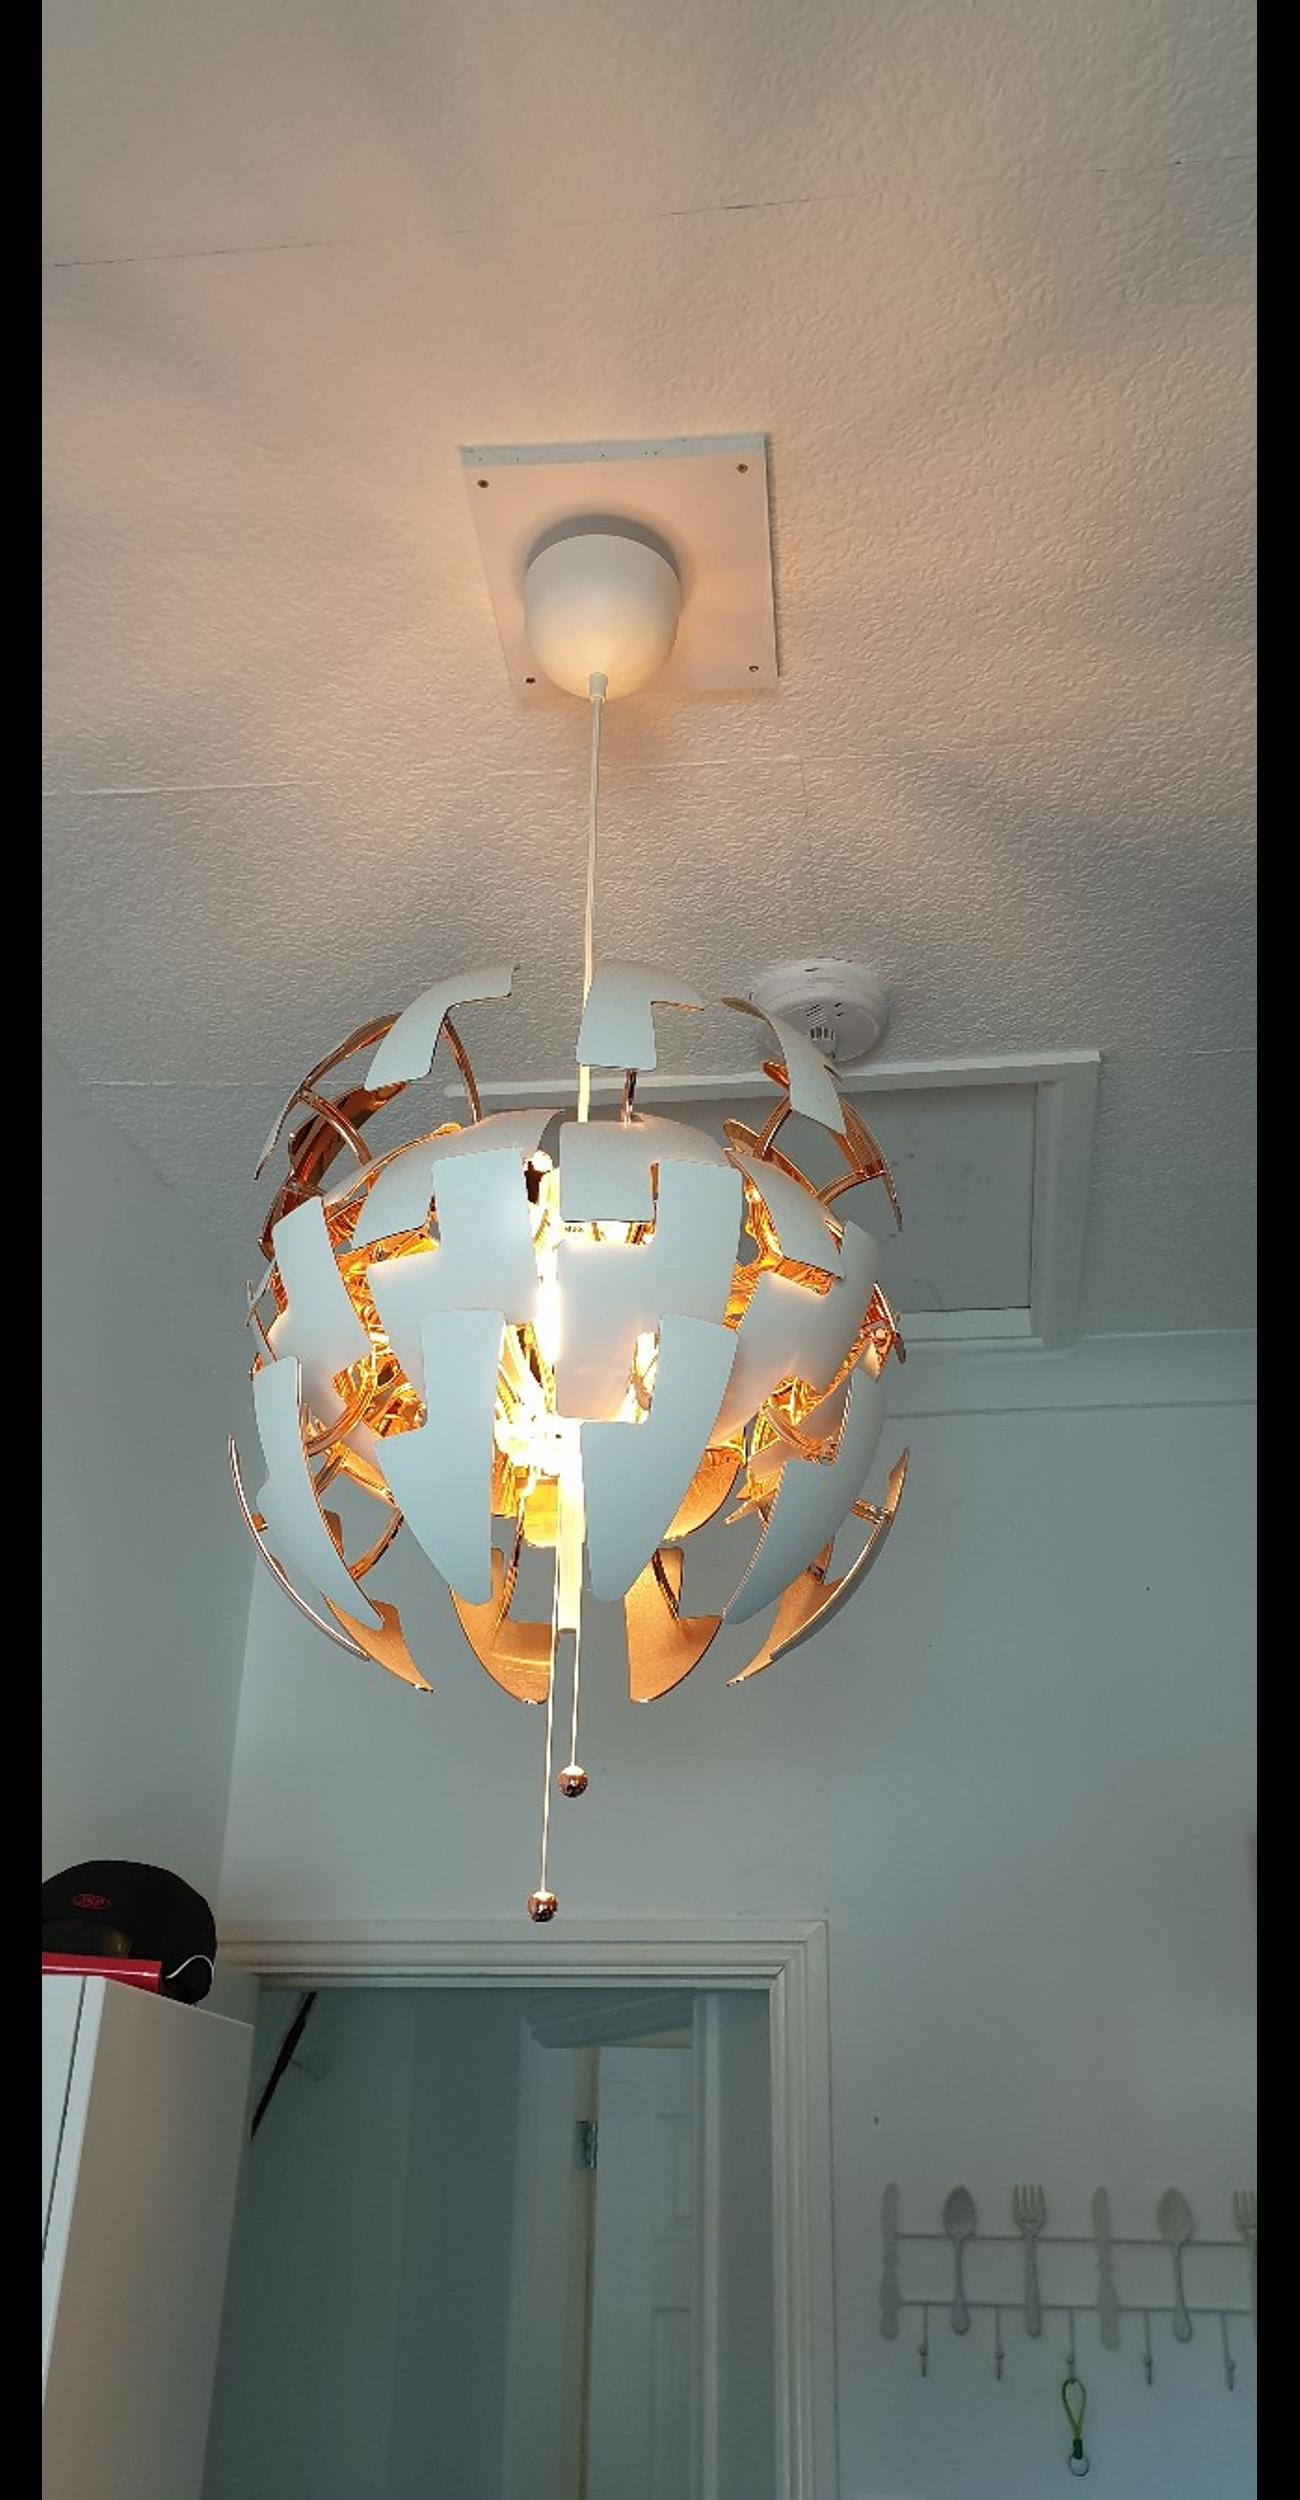 Ikea Copper Light Cheaper Than Retail Price Buy Clothing Accessories And Lifestyle Products For Women Men